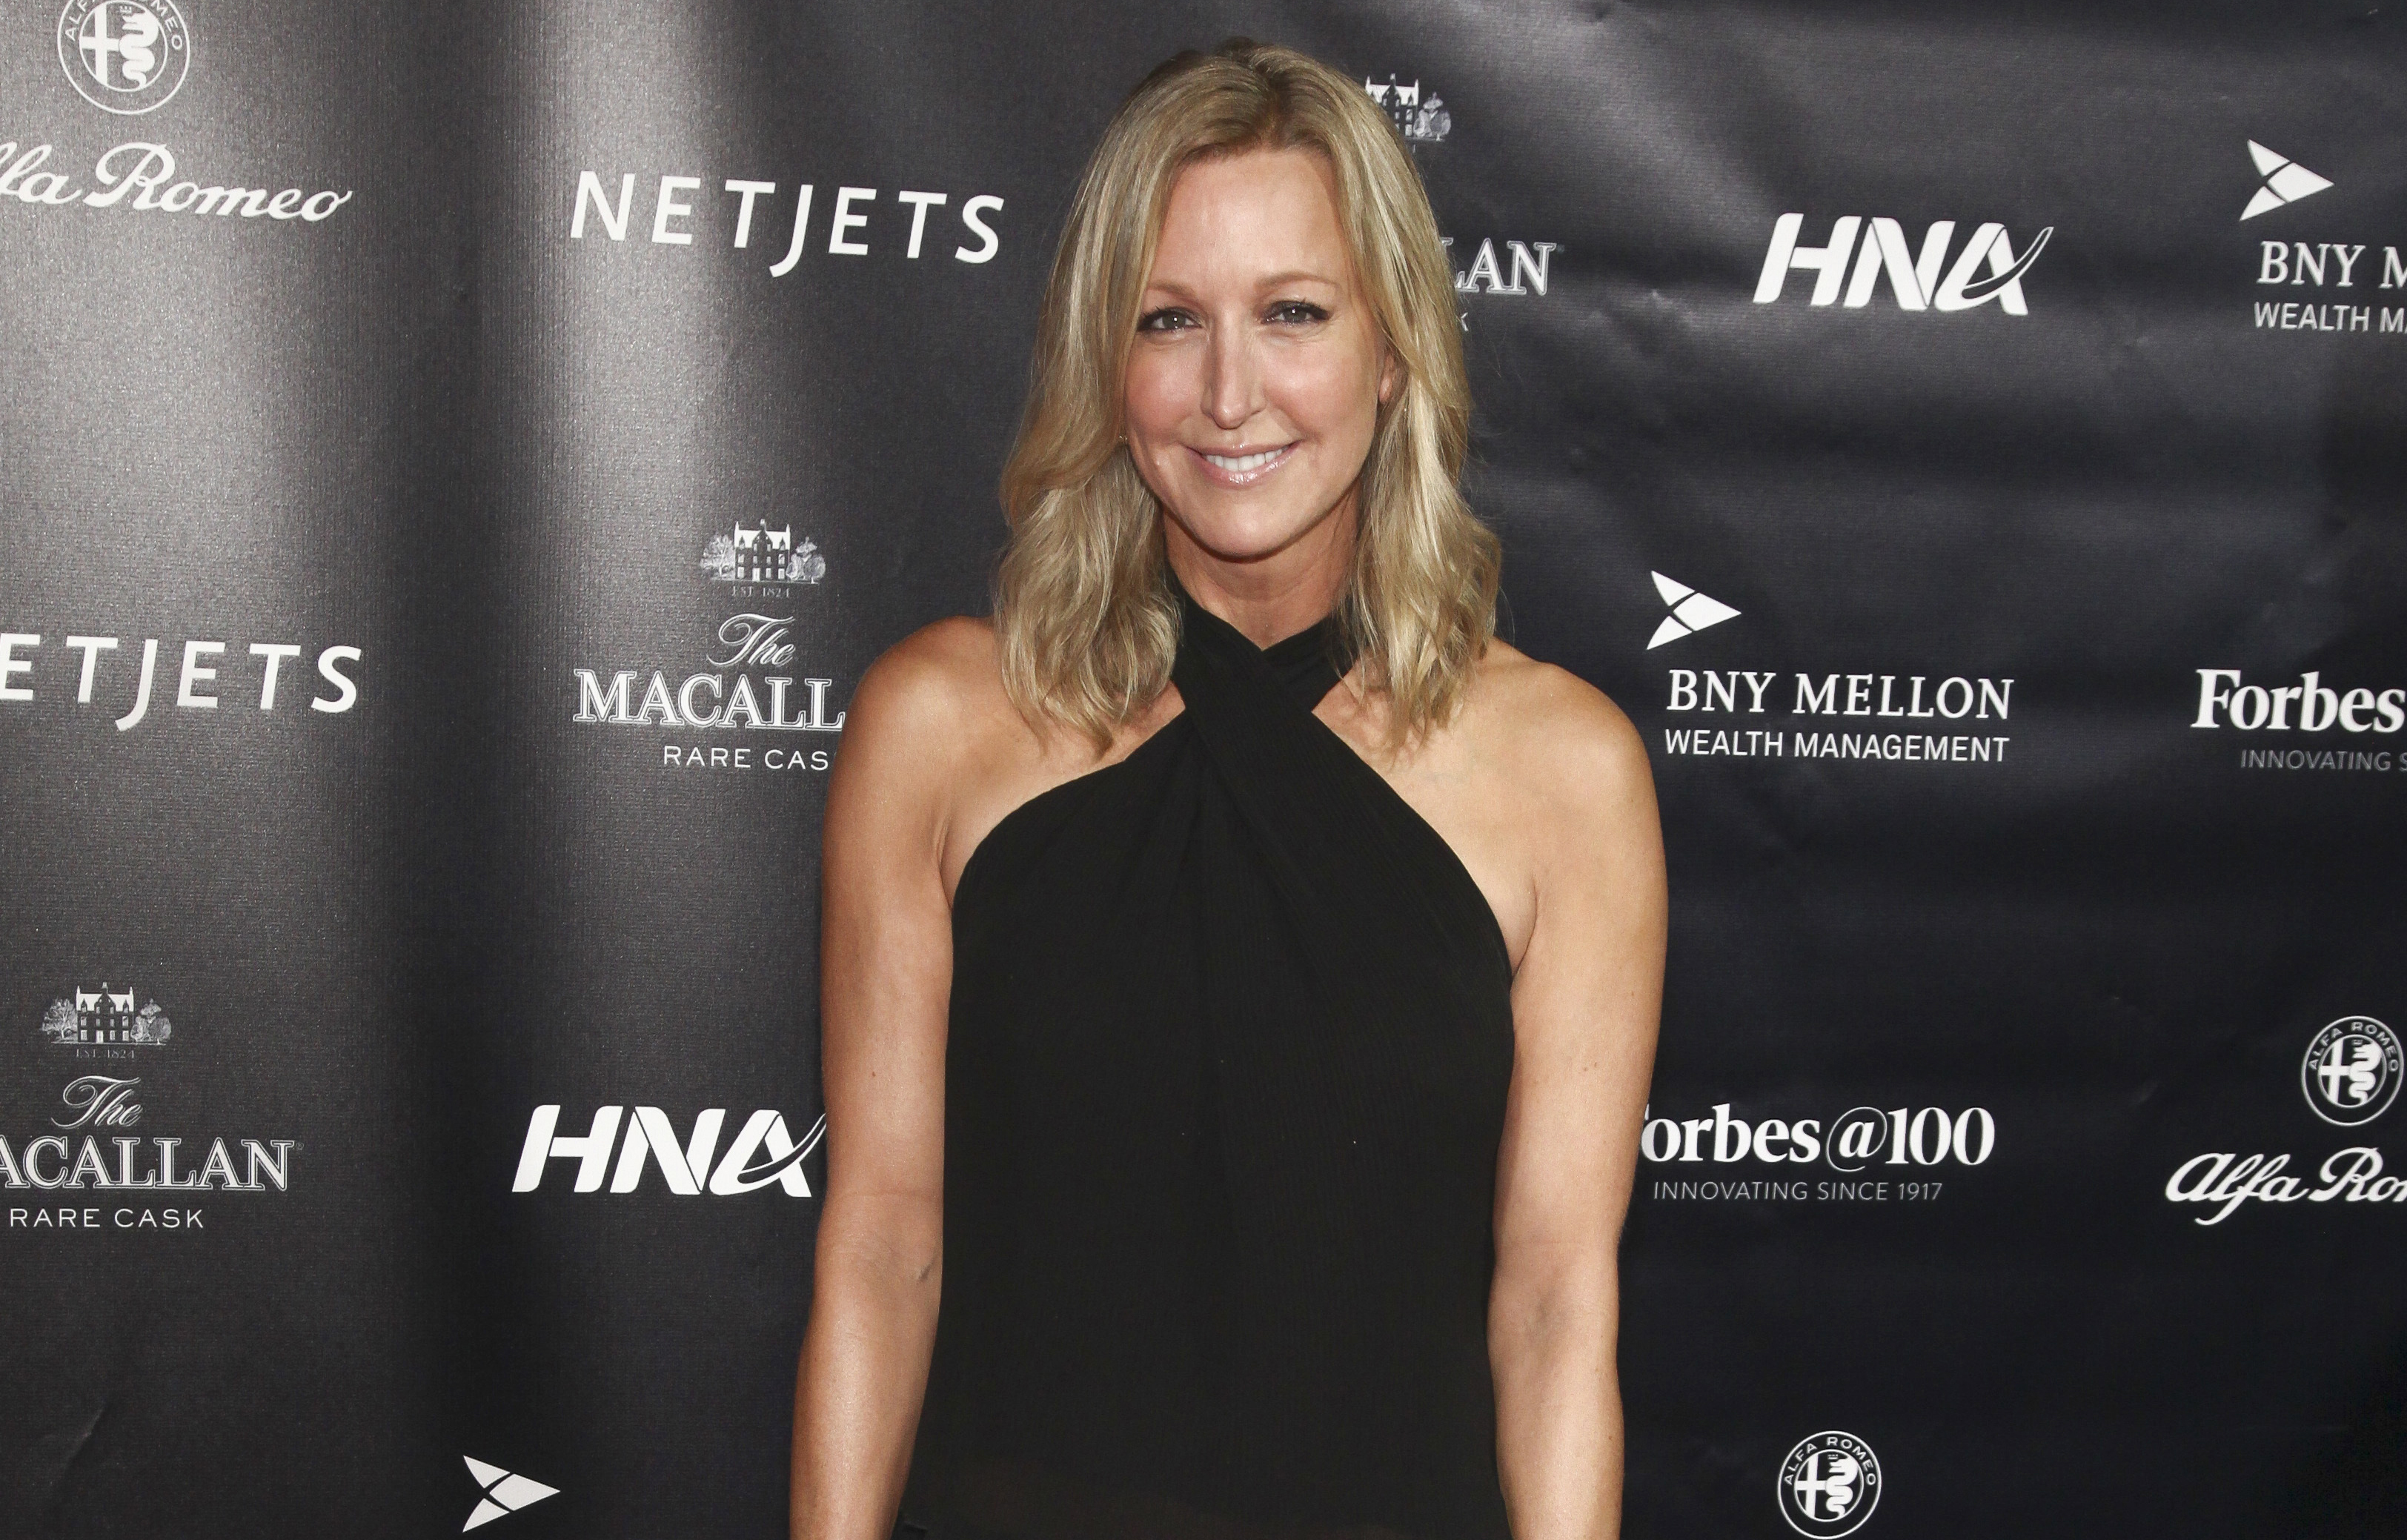 Lara Spencer attends the Forbes 100th Anniversary Gala at Pier Sixty in New York in 2017.